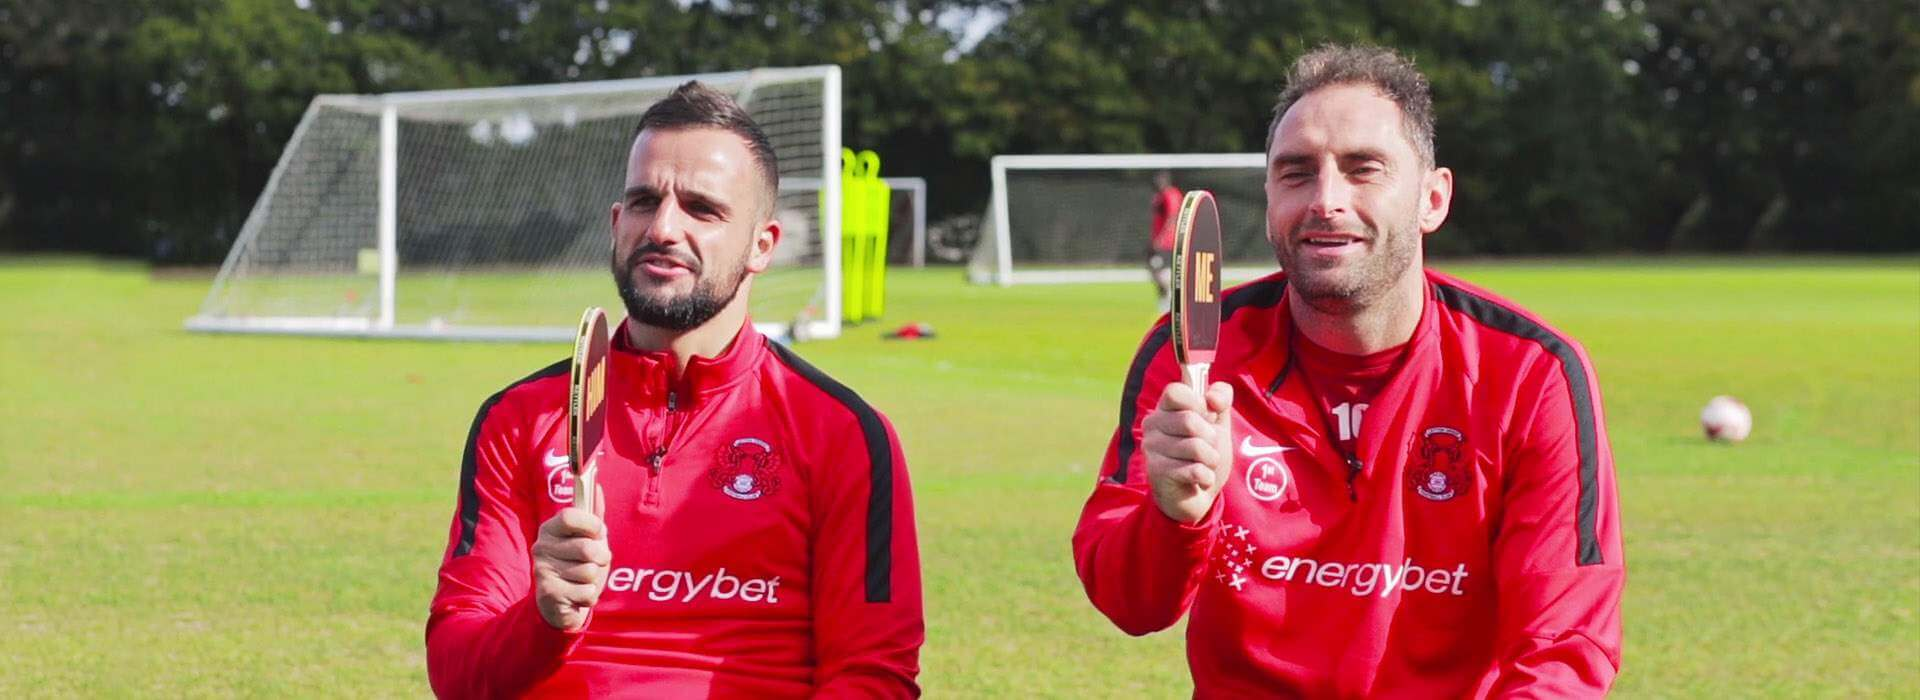 Watch our 'Me vs Him' quiz with Robbie Weir & Nicky Hunt! [video]